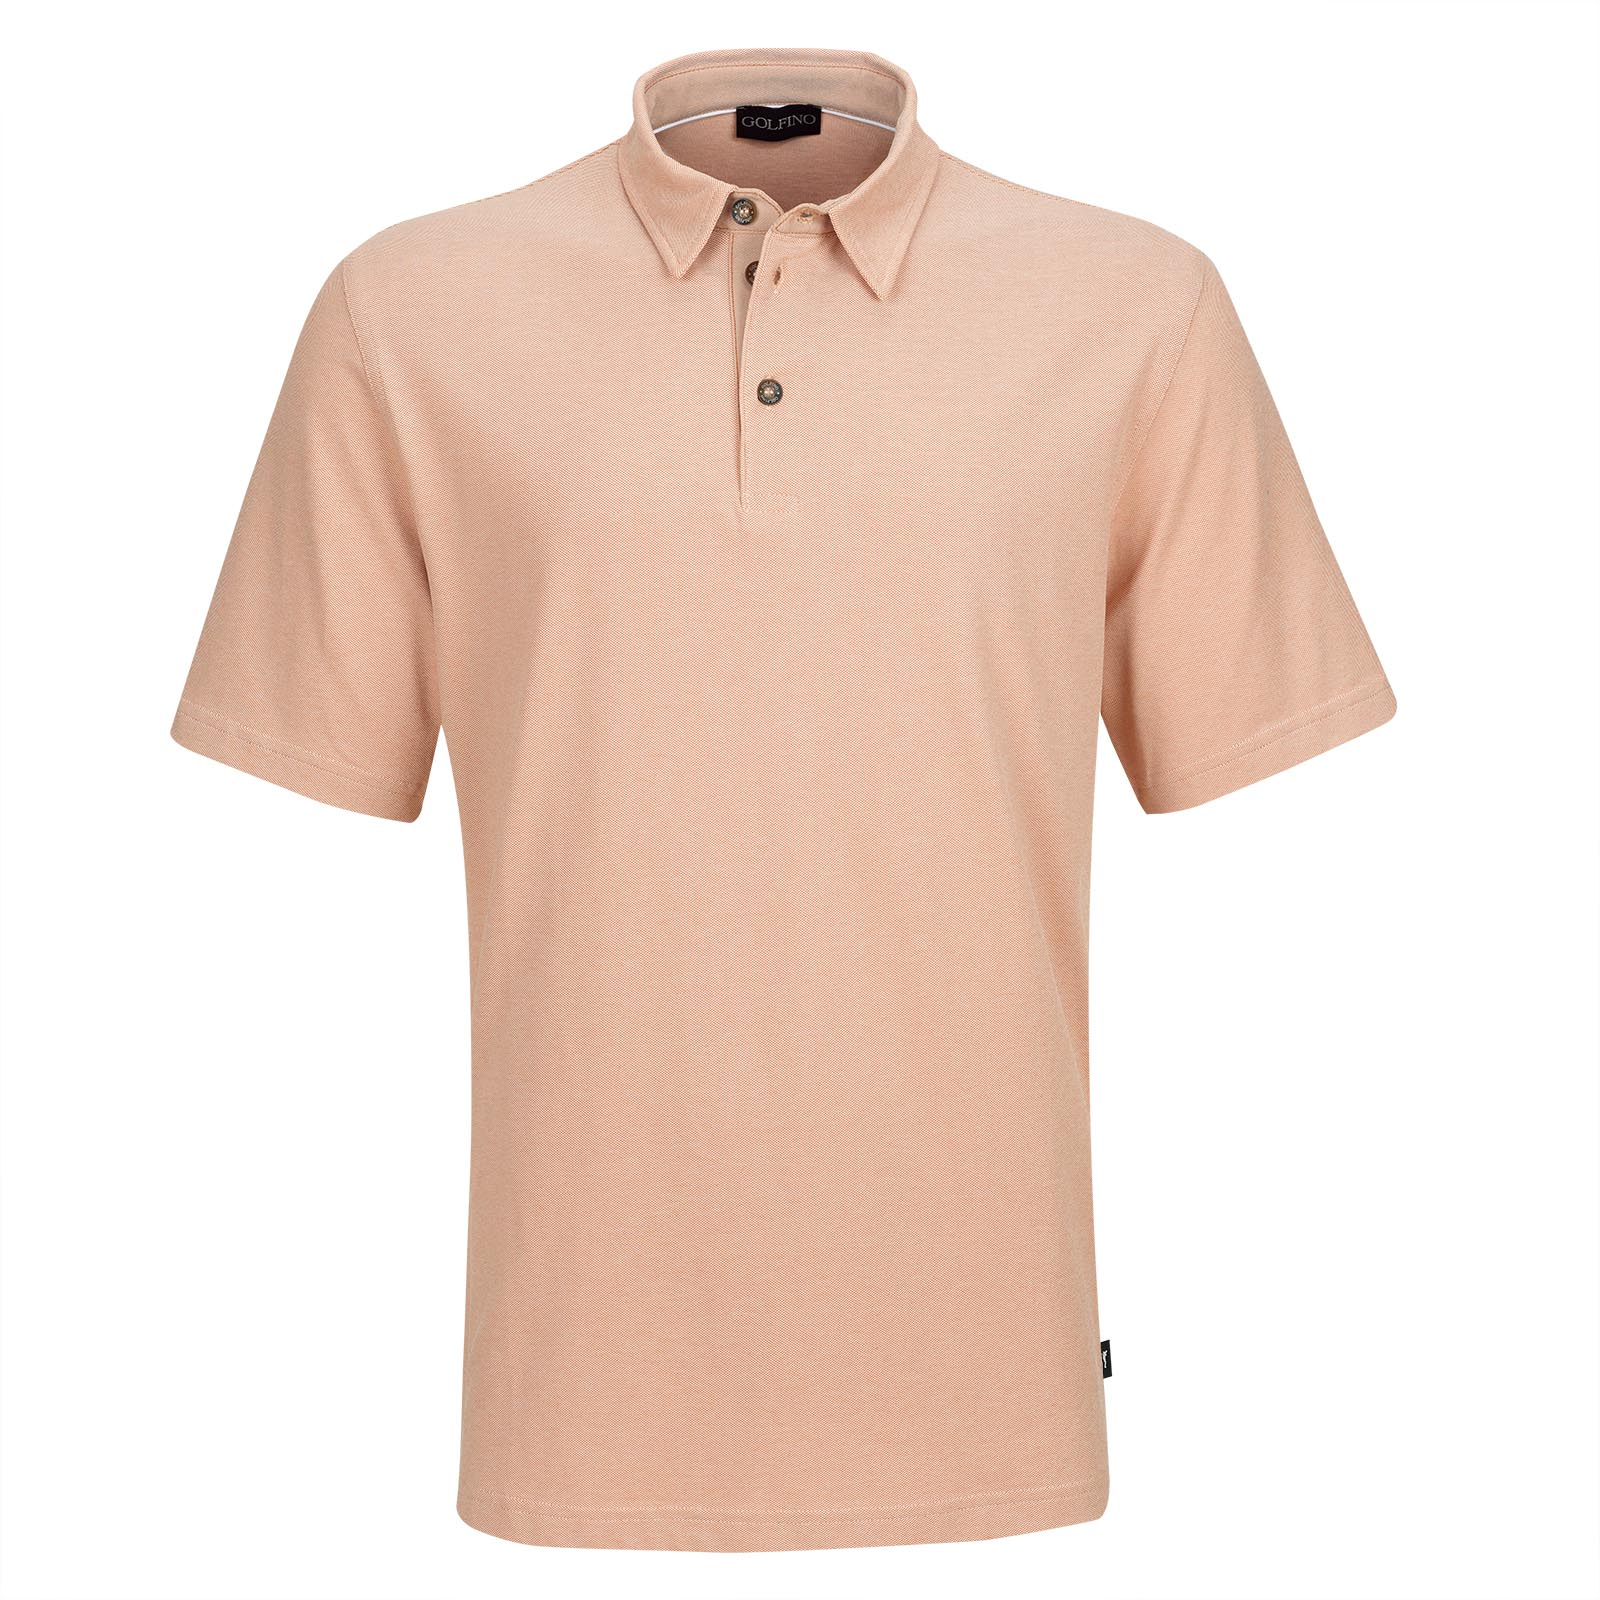 Men's short sleeve golf piqué with UV protection and stretch function